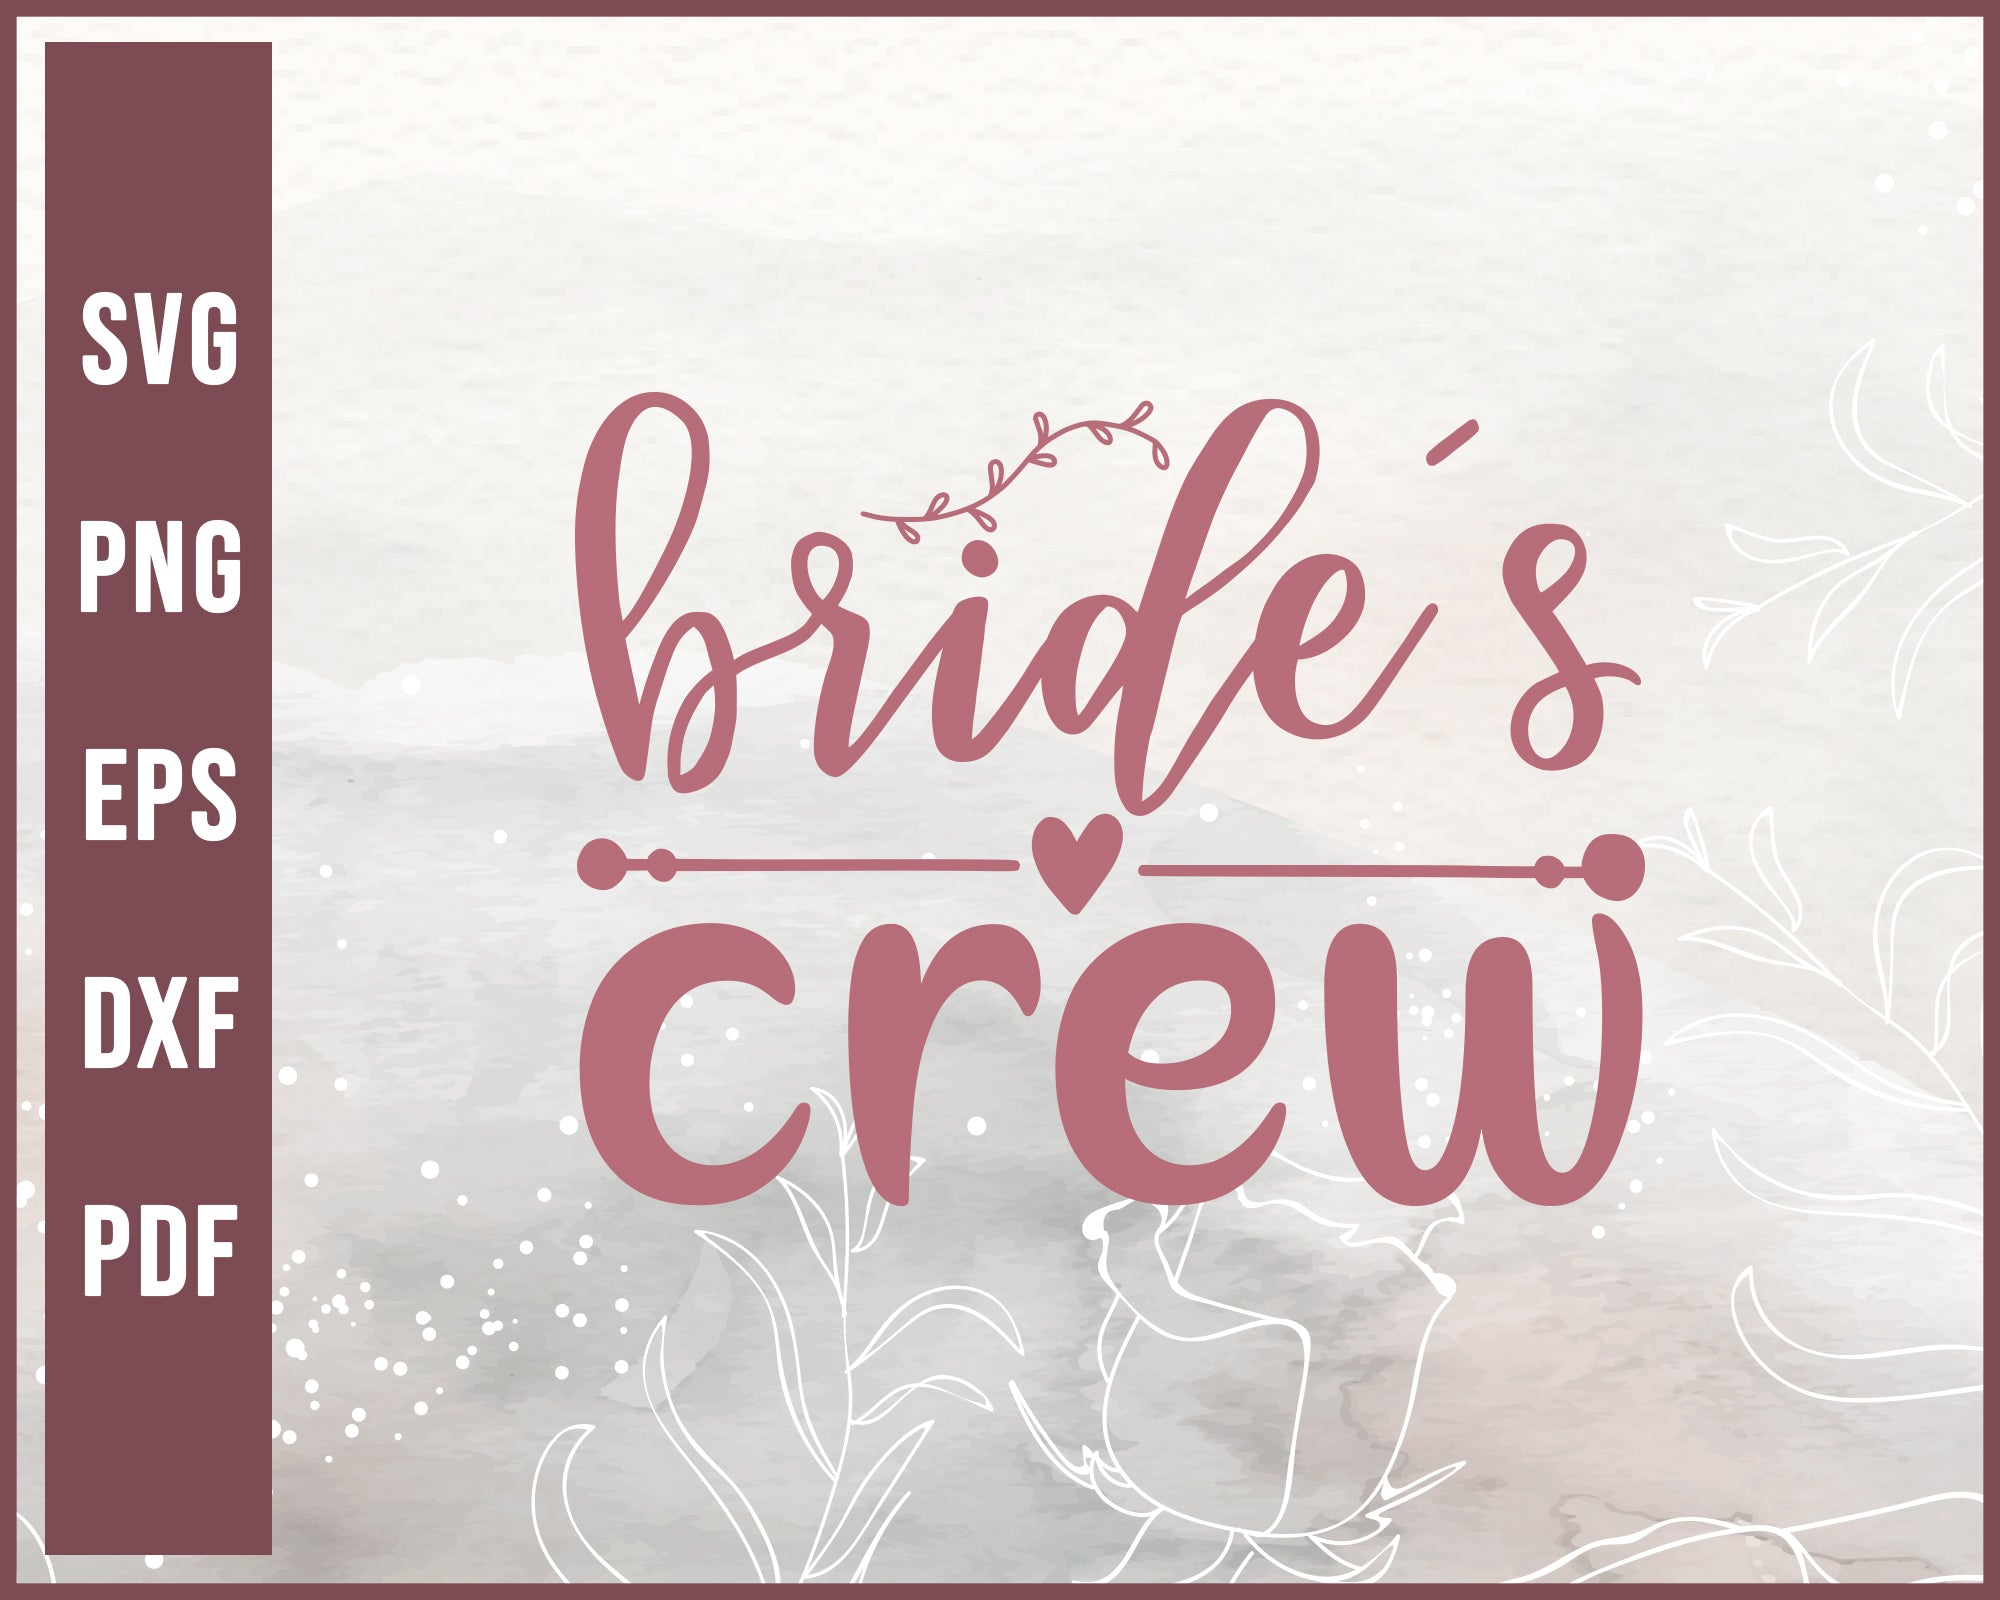 Bride And Crew Wedding svg Designs For Cricut Silhouette And eps png Printable Files